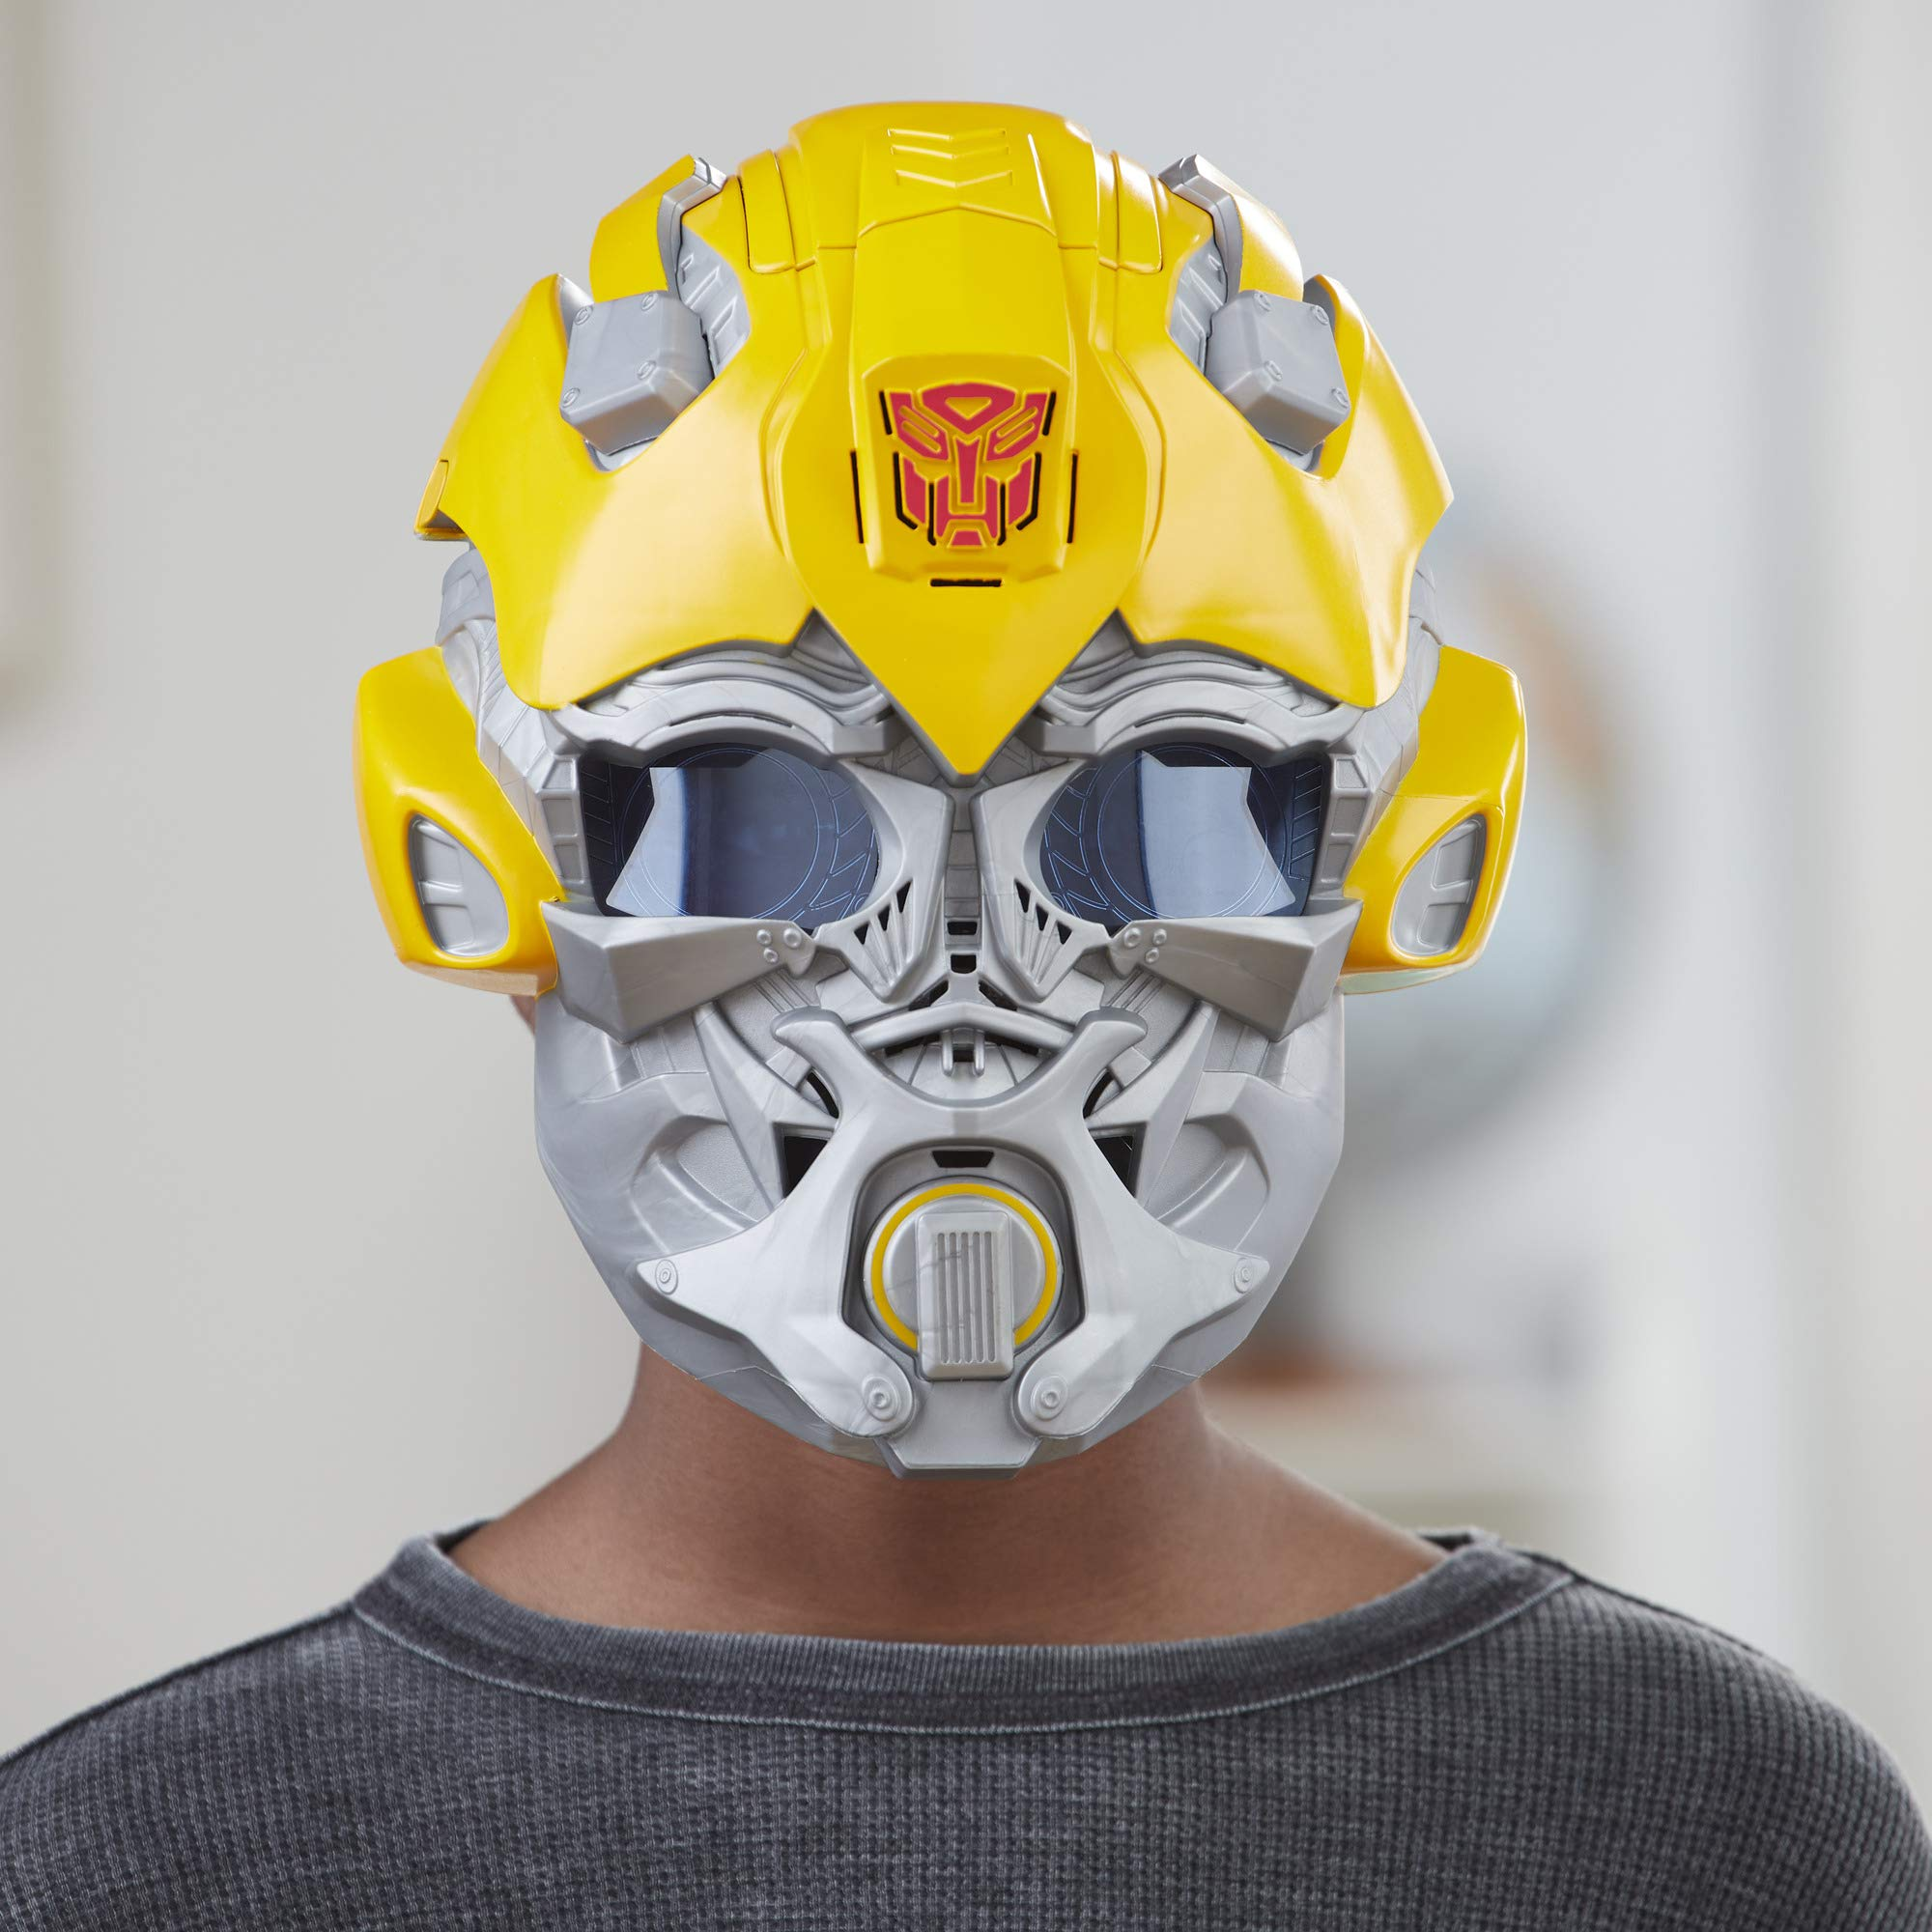 Transformers: Bumblebee -- Bumblebee Voice Changer Mask by Transformers (Image #3)